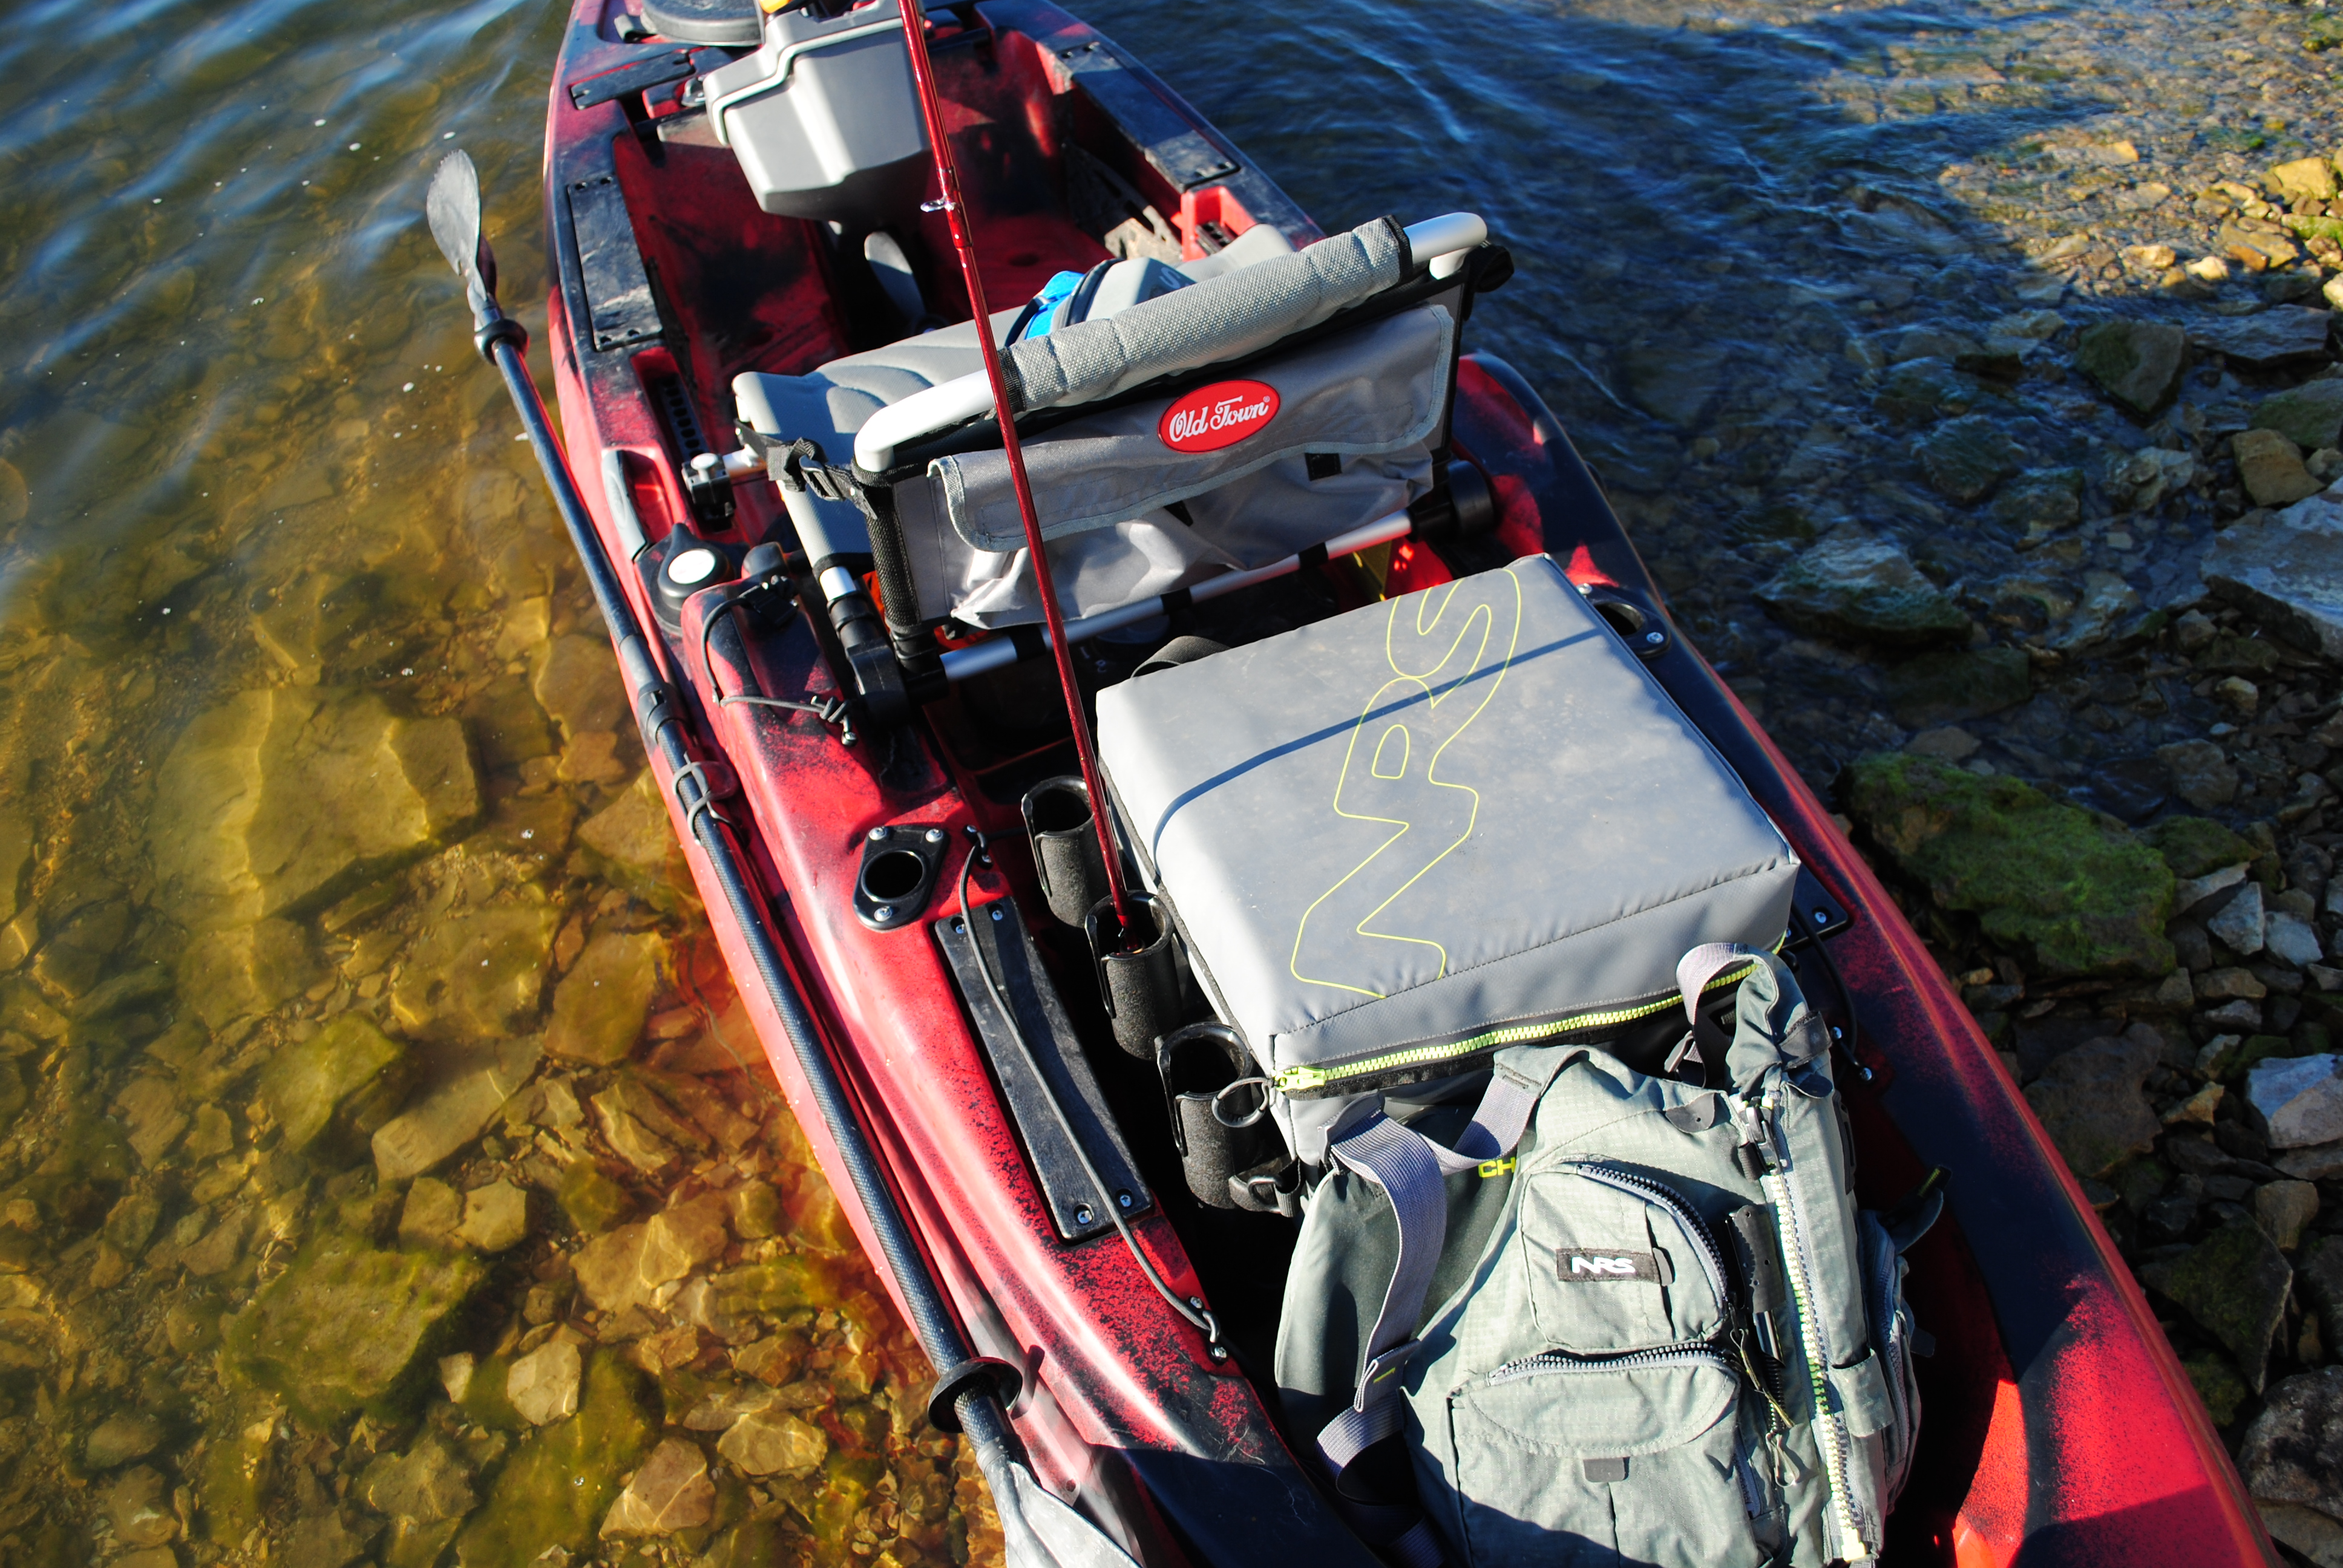 Pedal, Fish, Catch: Old Town Predator PDL Kayak Review